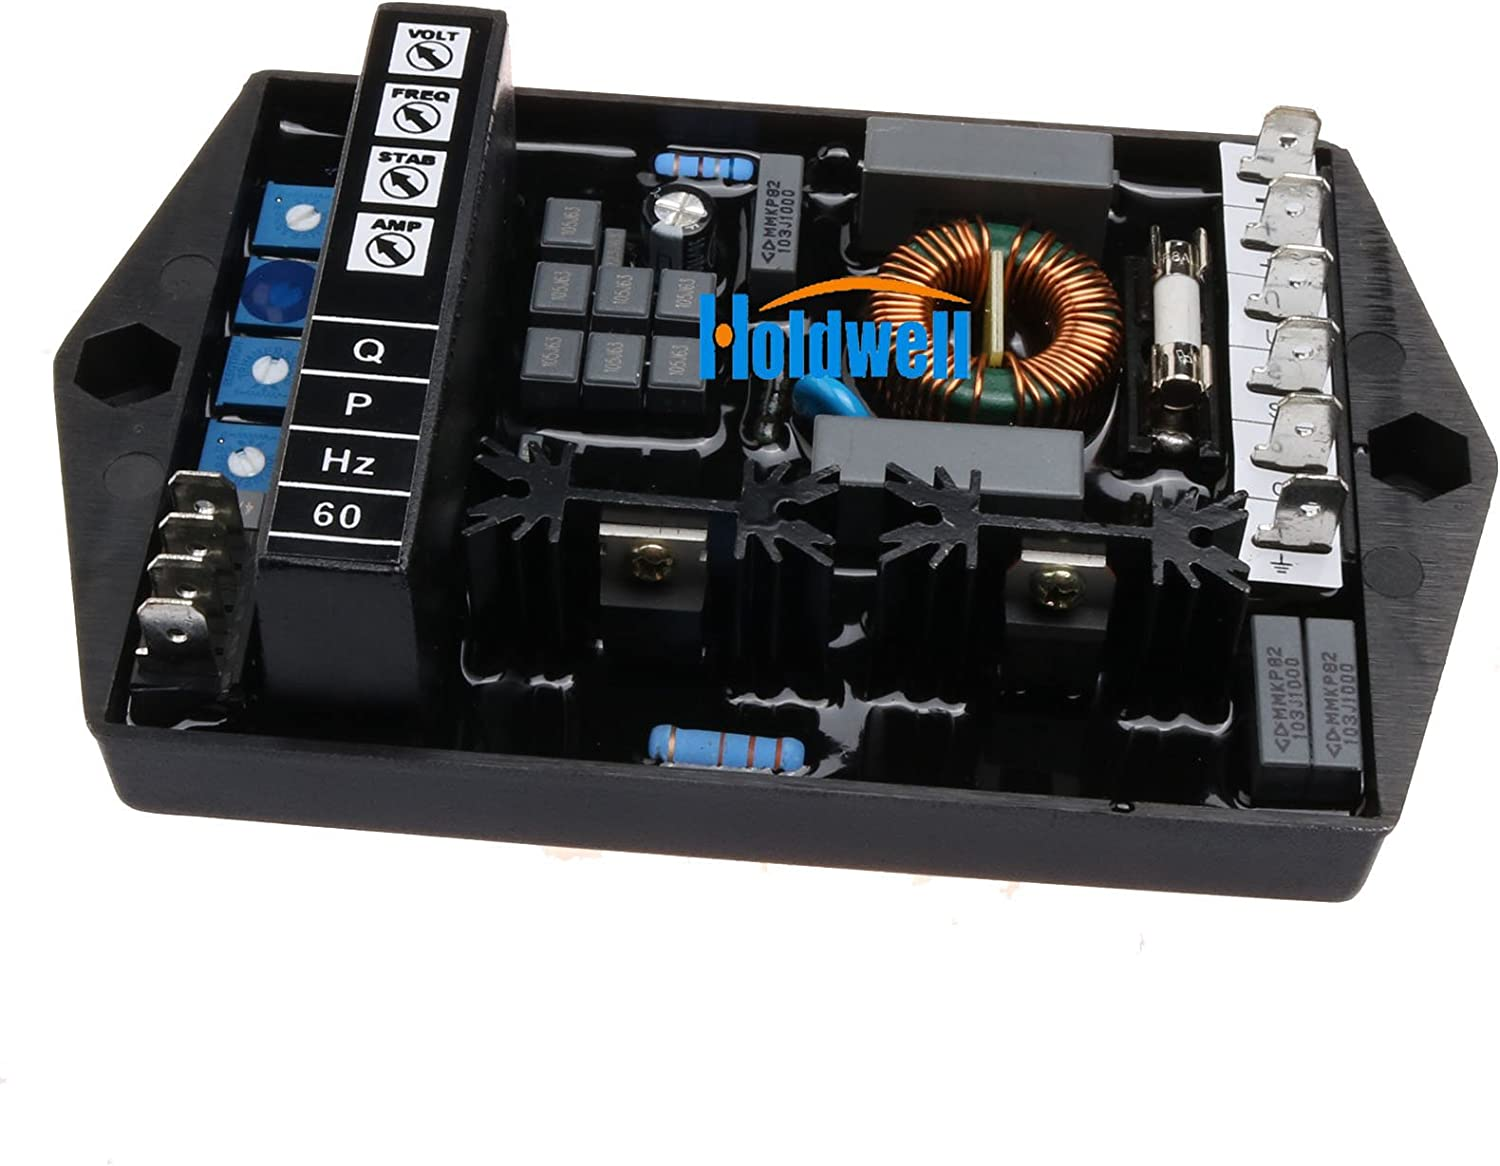 Friday Part AVR M16FA655A Automatic Voltage Regulator for Marelli With 1 Year Warranty